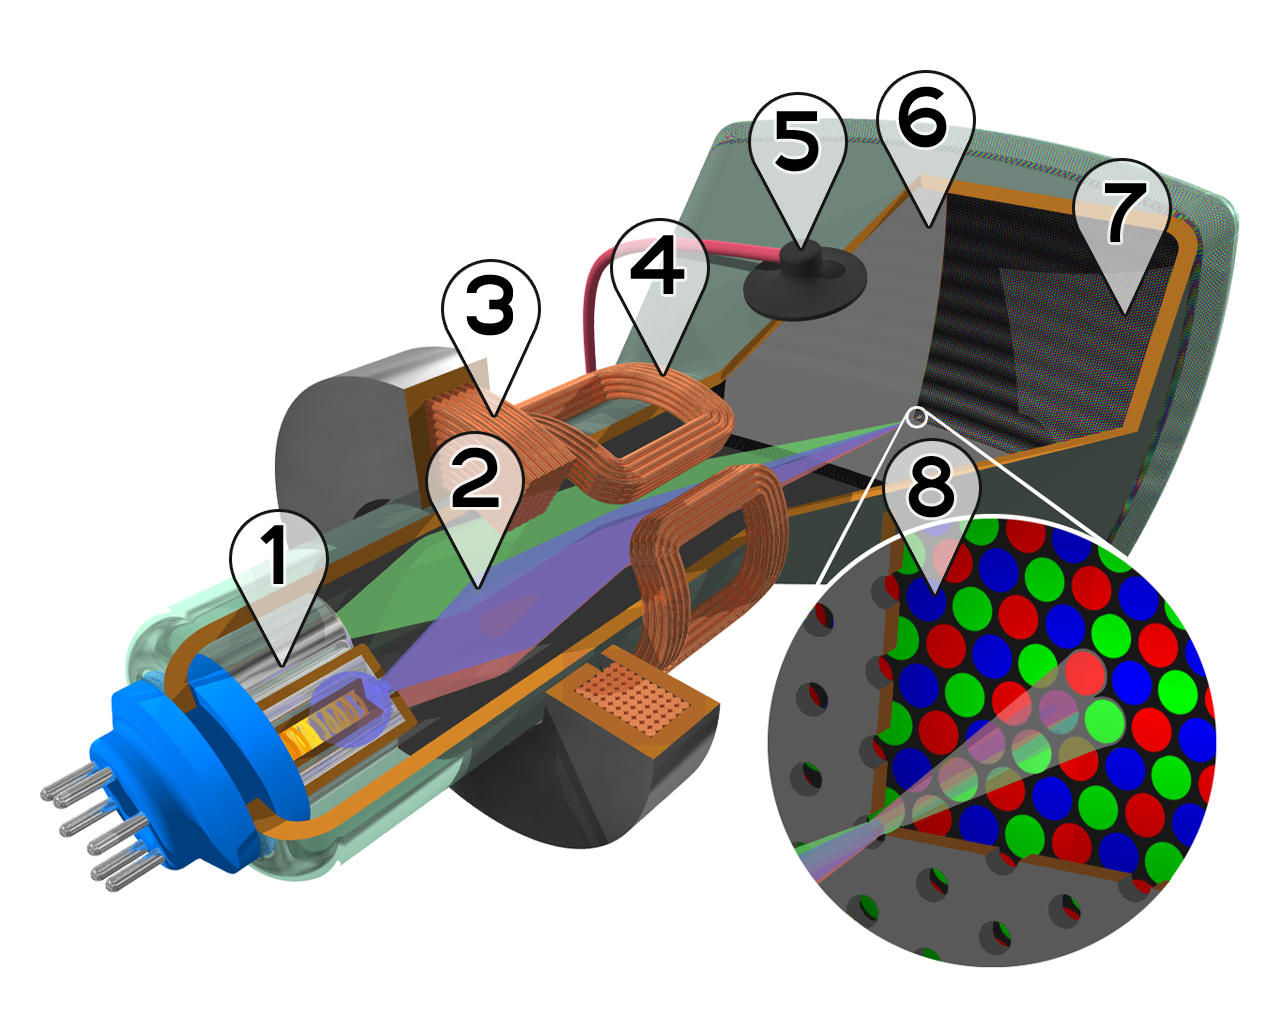 Cutaway rendering of a color CRT: 1. Three Electron guns (for red, green, and blue phosphor dots)2. Electron beams 3. Focusing coils 4. Deflection coils 5. Anode connection 6. Mask for separating beams for red, green, and blue part of displayed image 7. Phosphor layer with red, green, and blue zones 8. Close-up of the phosphor-coated inner side of the screen